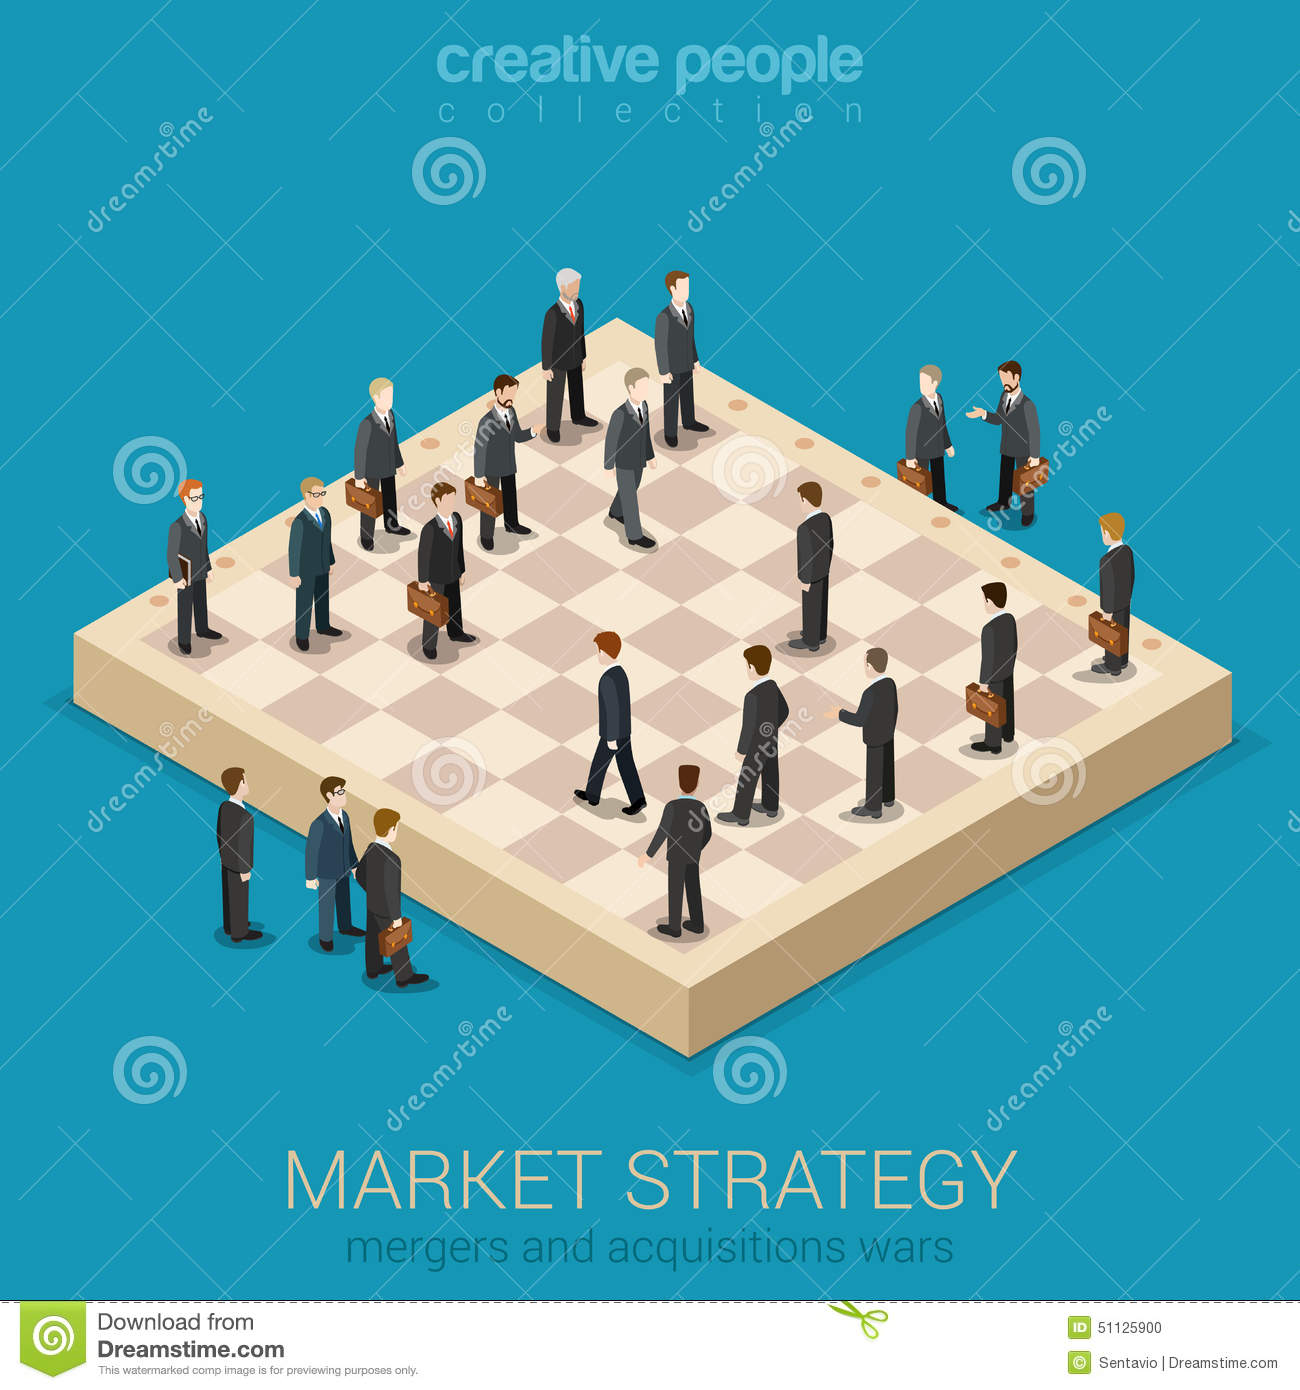 Corporate business market strategy flat style 3d isometric